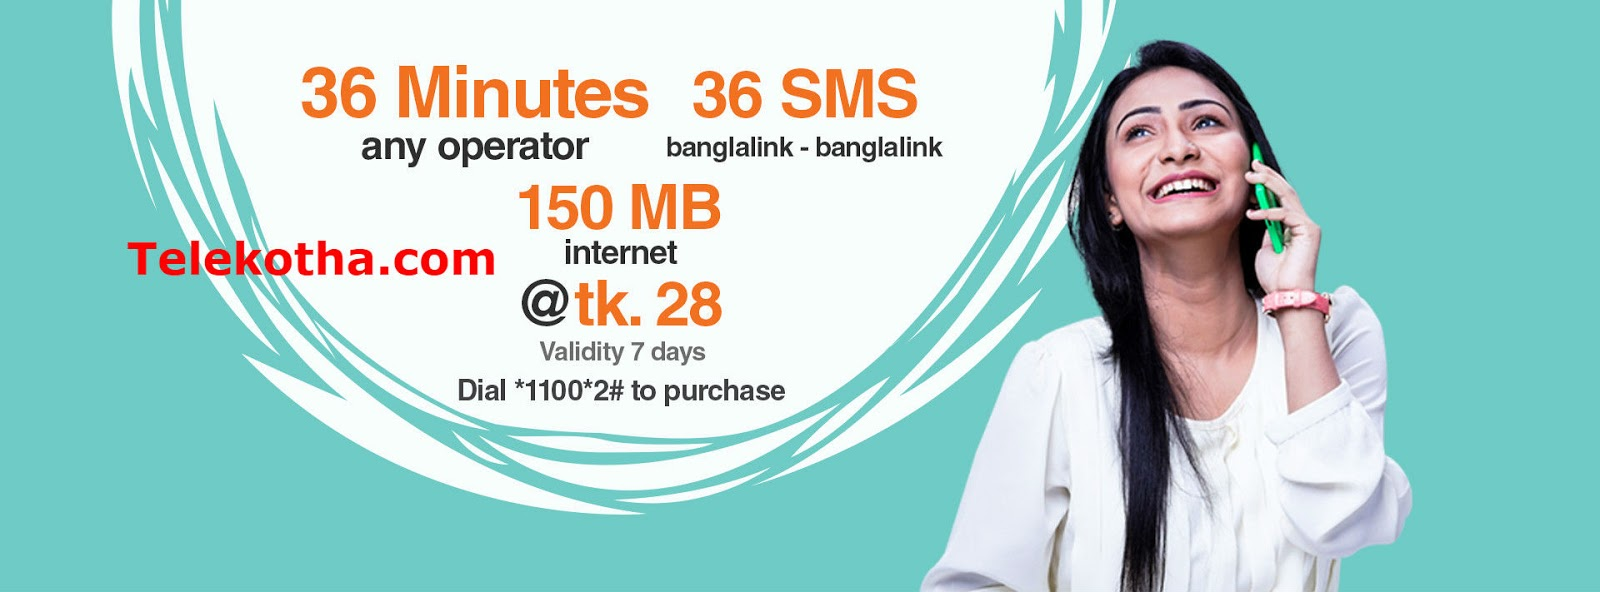 36 minutes (any operator), 150 MB internet and 36 SMS (Banglalink-Banglalink) for just Tk. 28. Dial *1100*2#